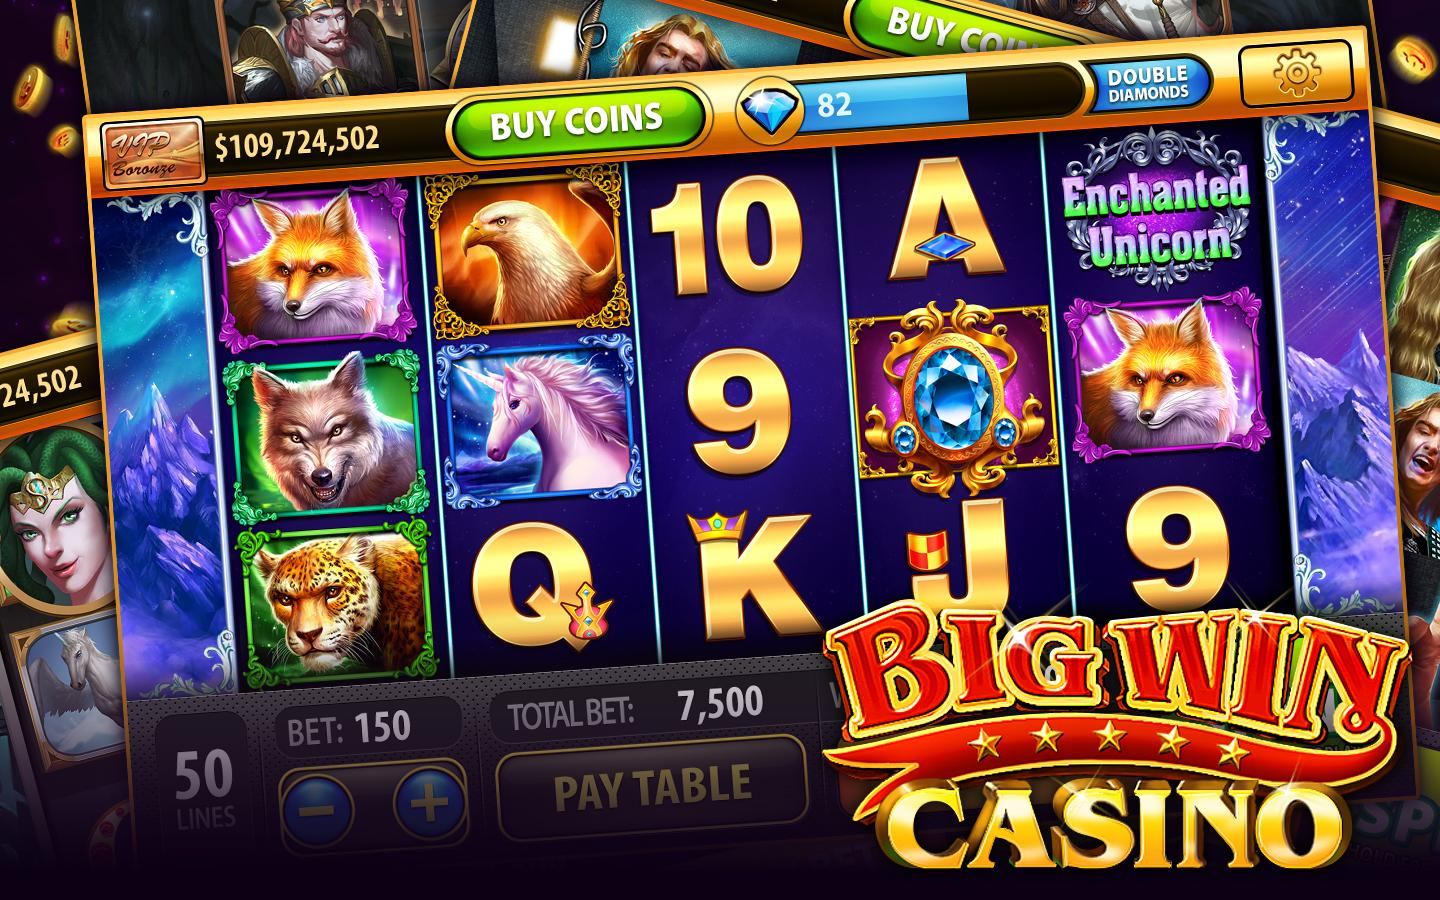 Star Adventure Slots - Play Penny Slot Machines Online